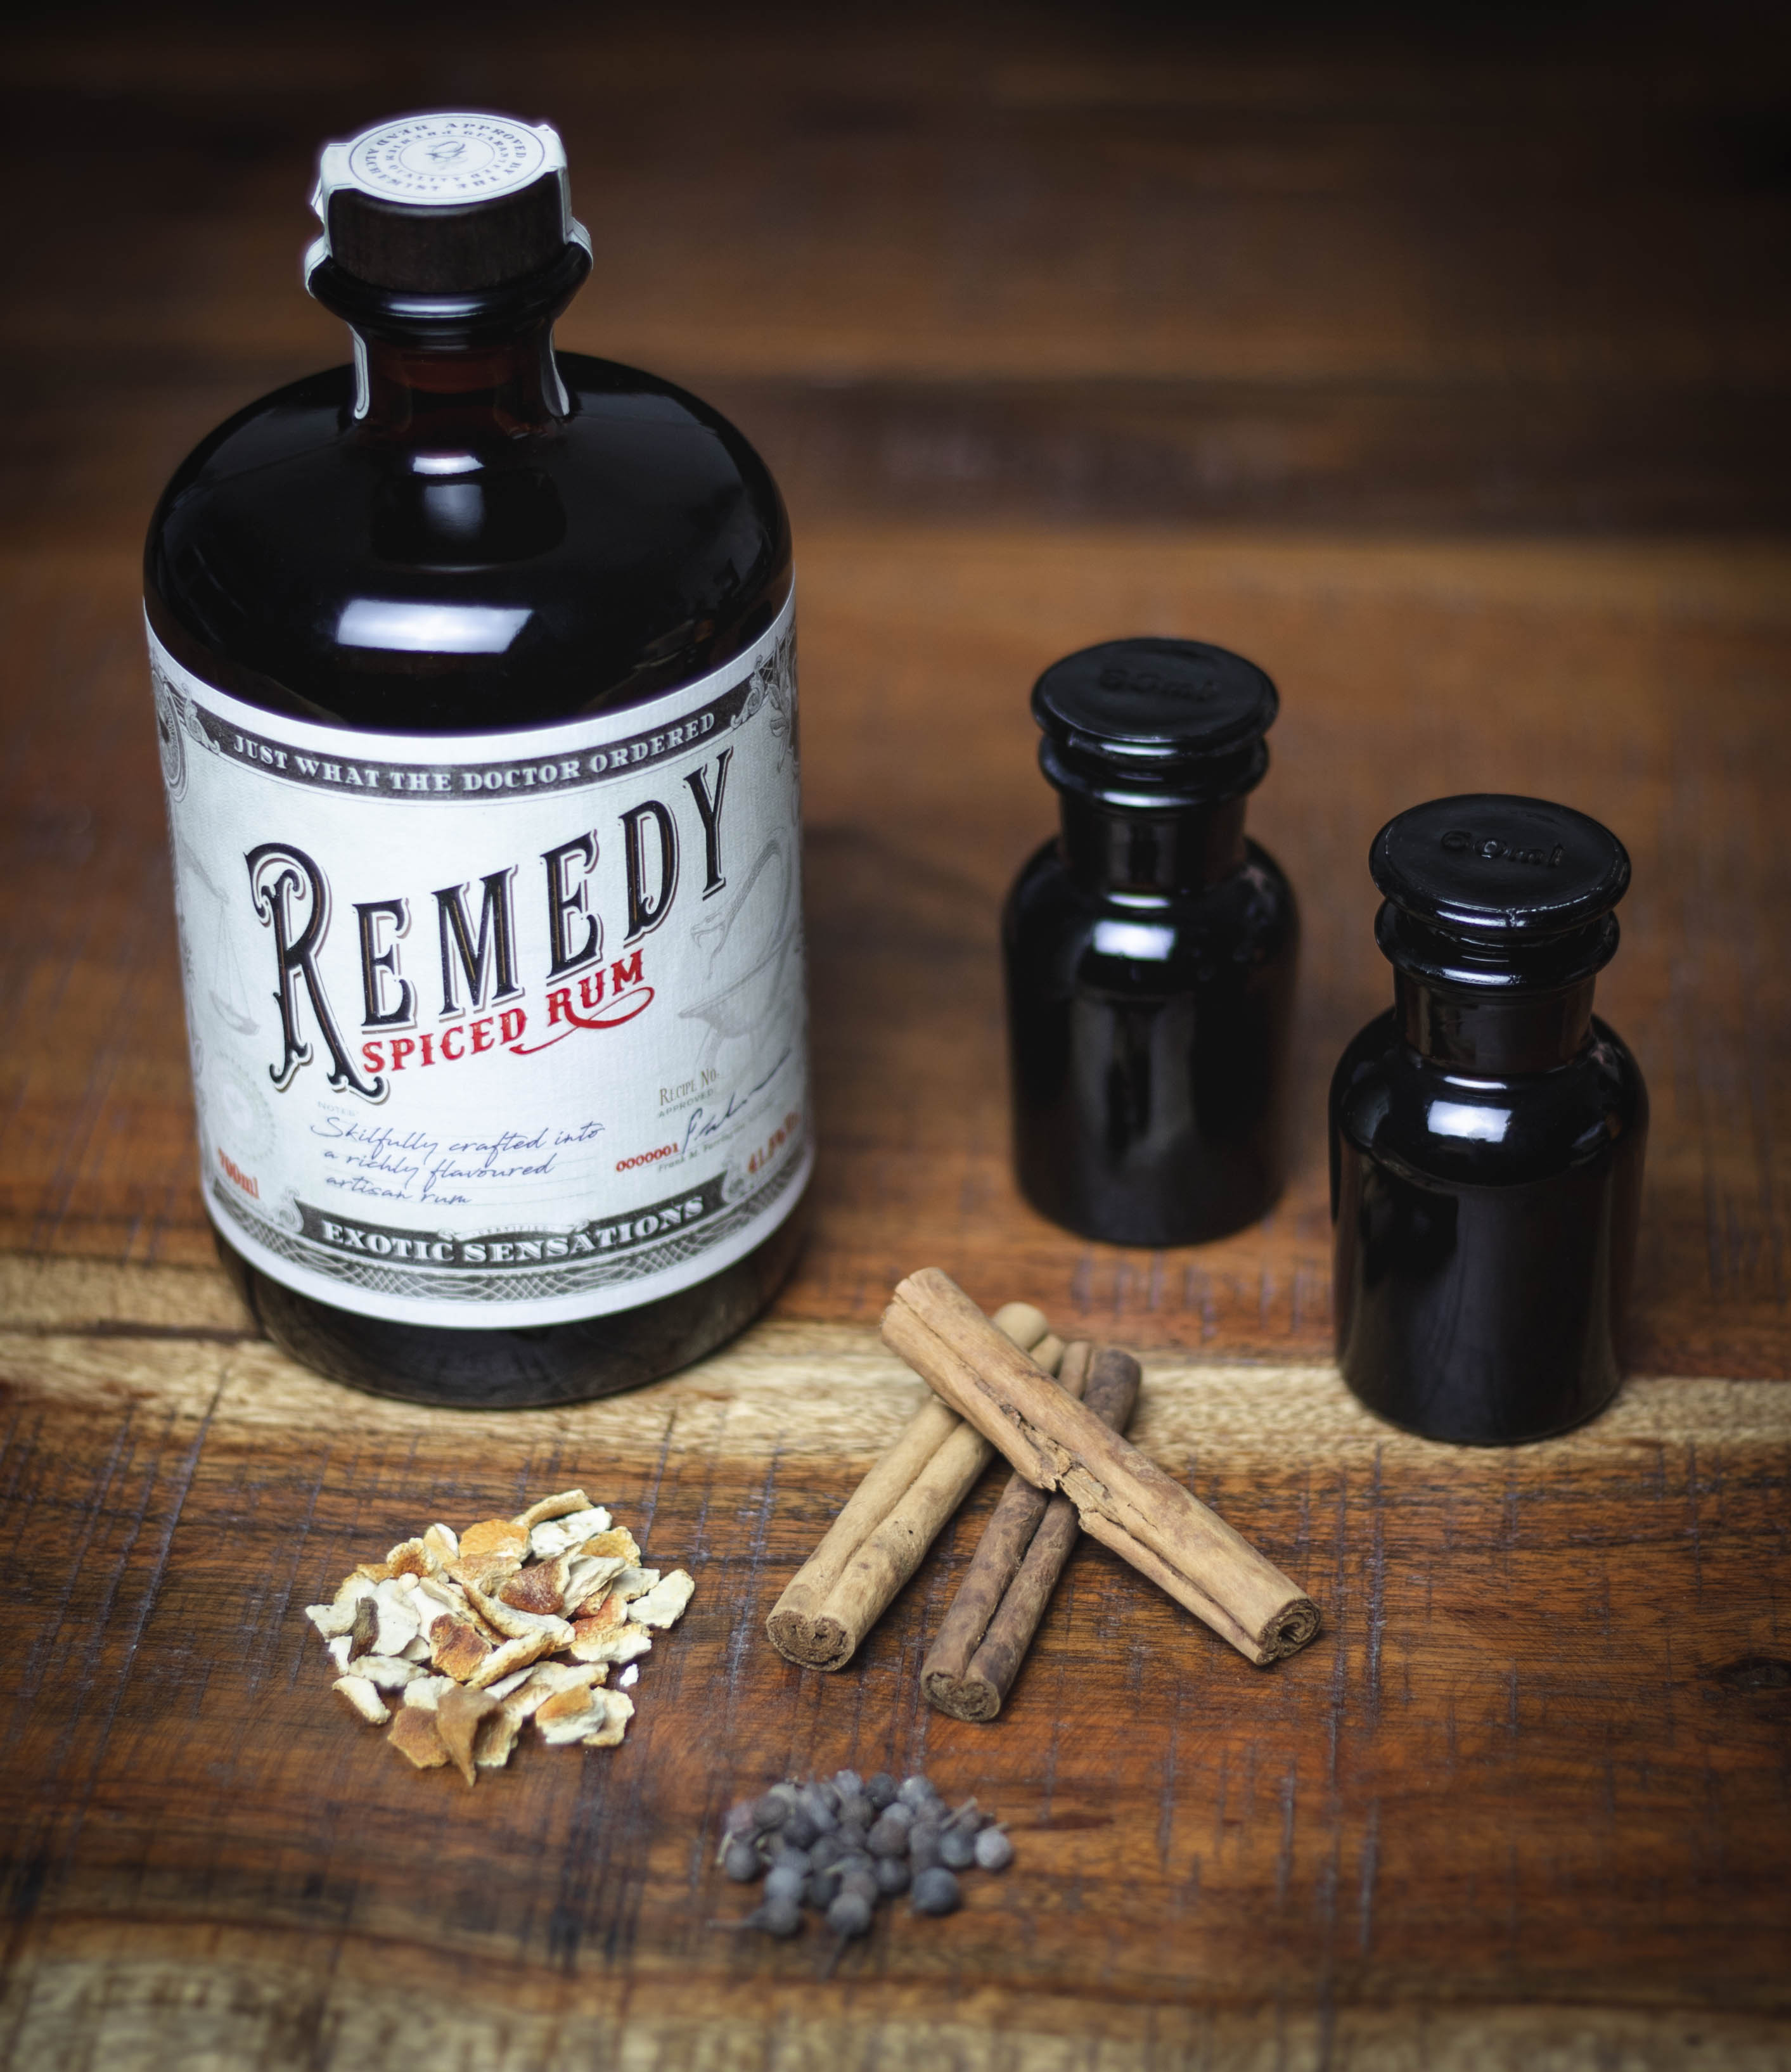 Remedy Spiced Rum